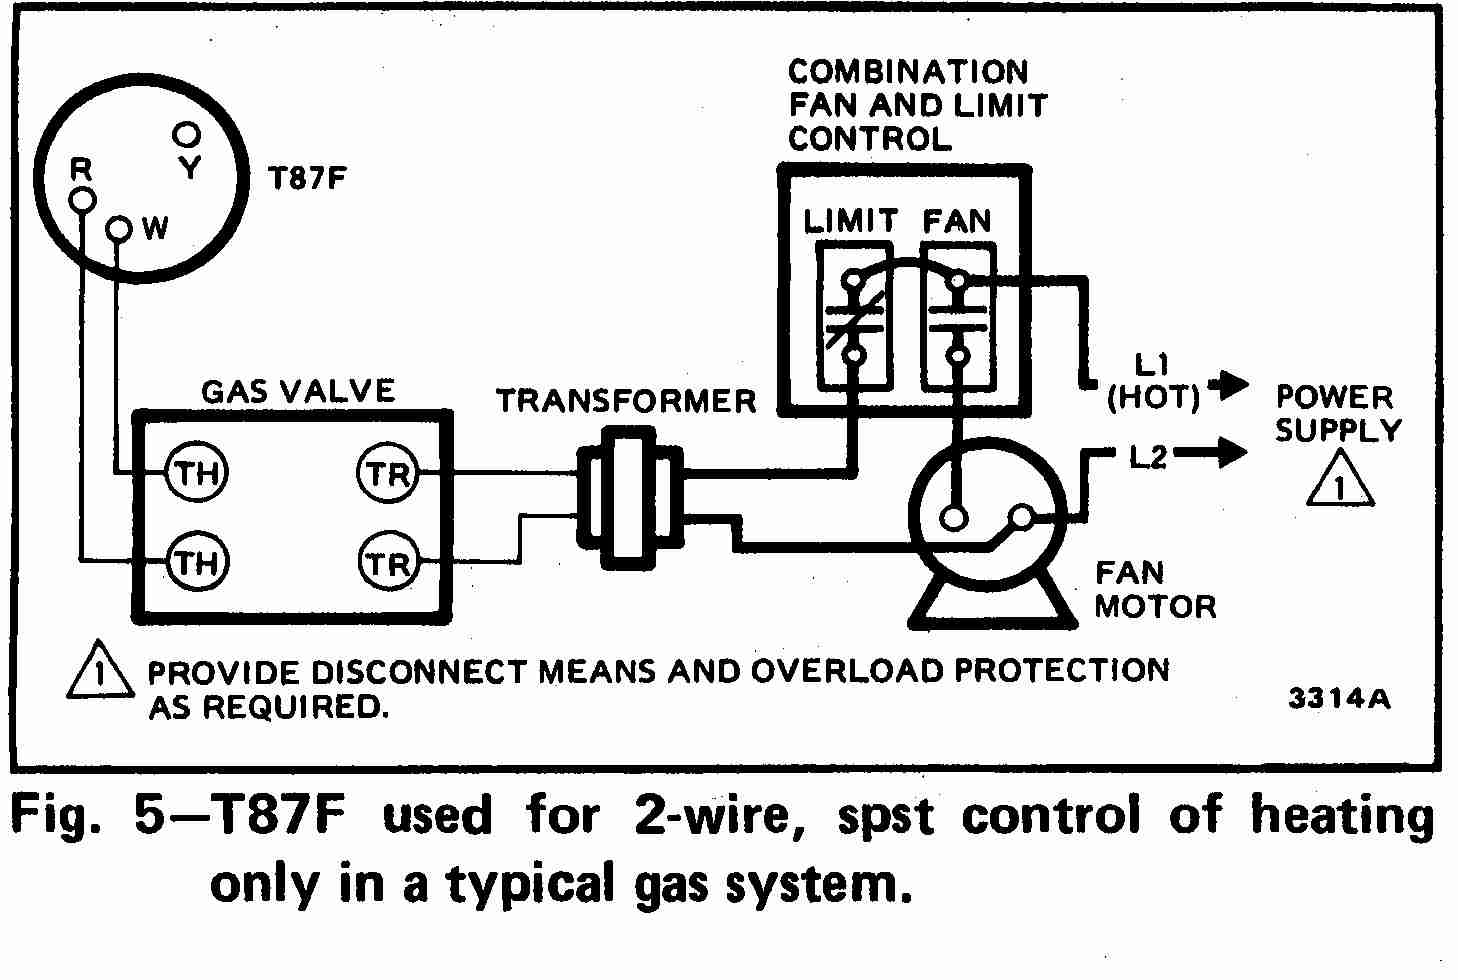 TT_T87F_0002_2Wg_DJF room thermostat wiring diagrams for hvac systems AC Blower Motor Wiring Diagram at honlapkeszites.co